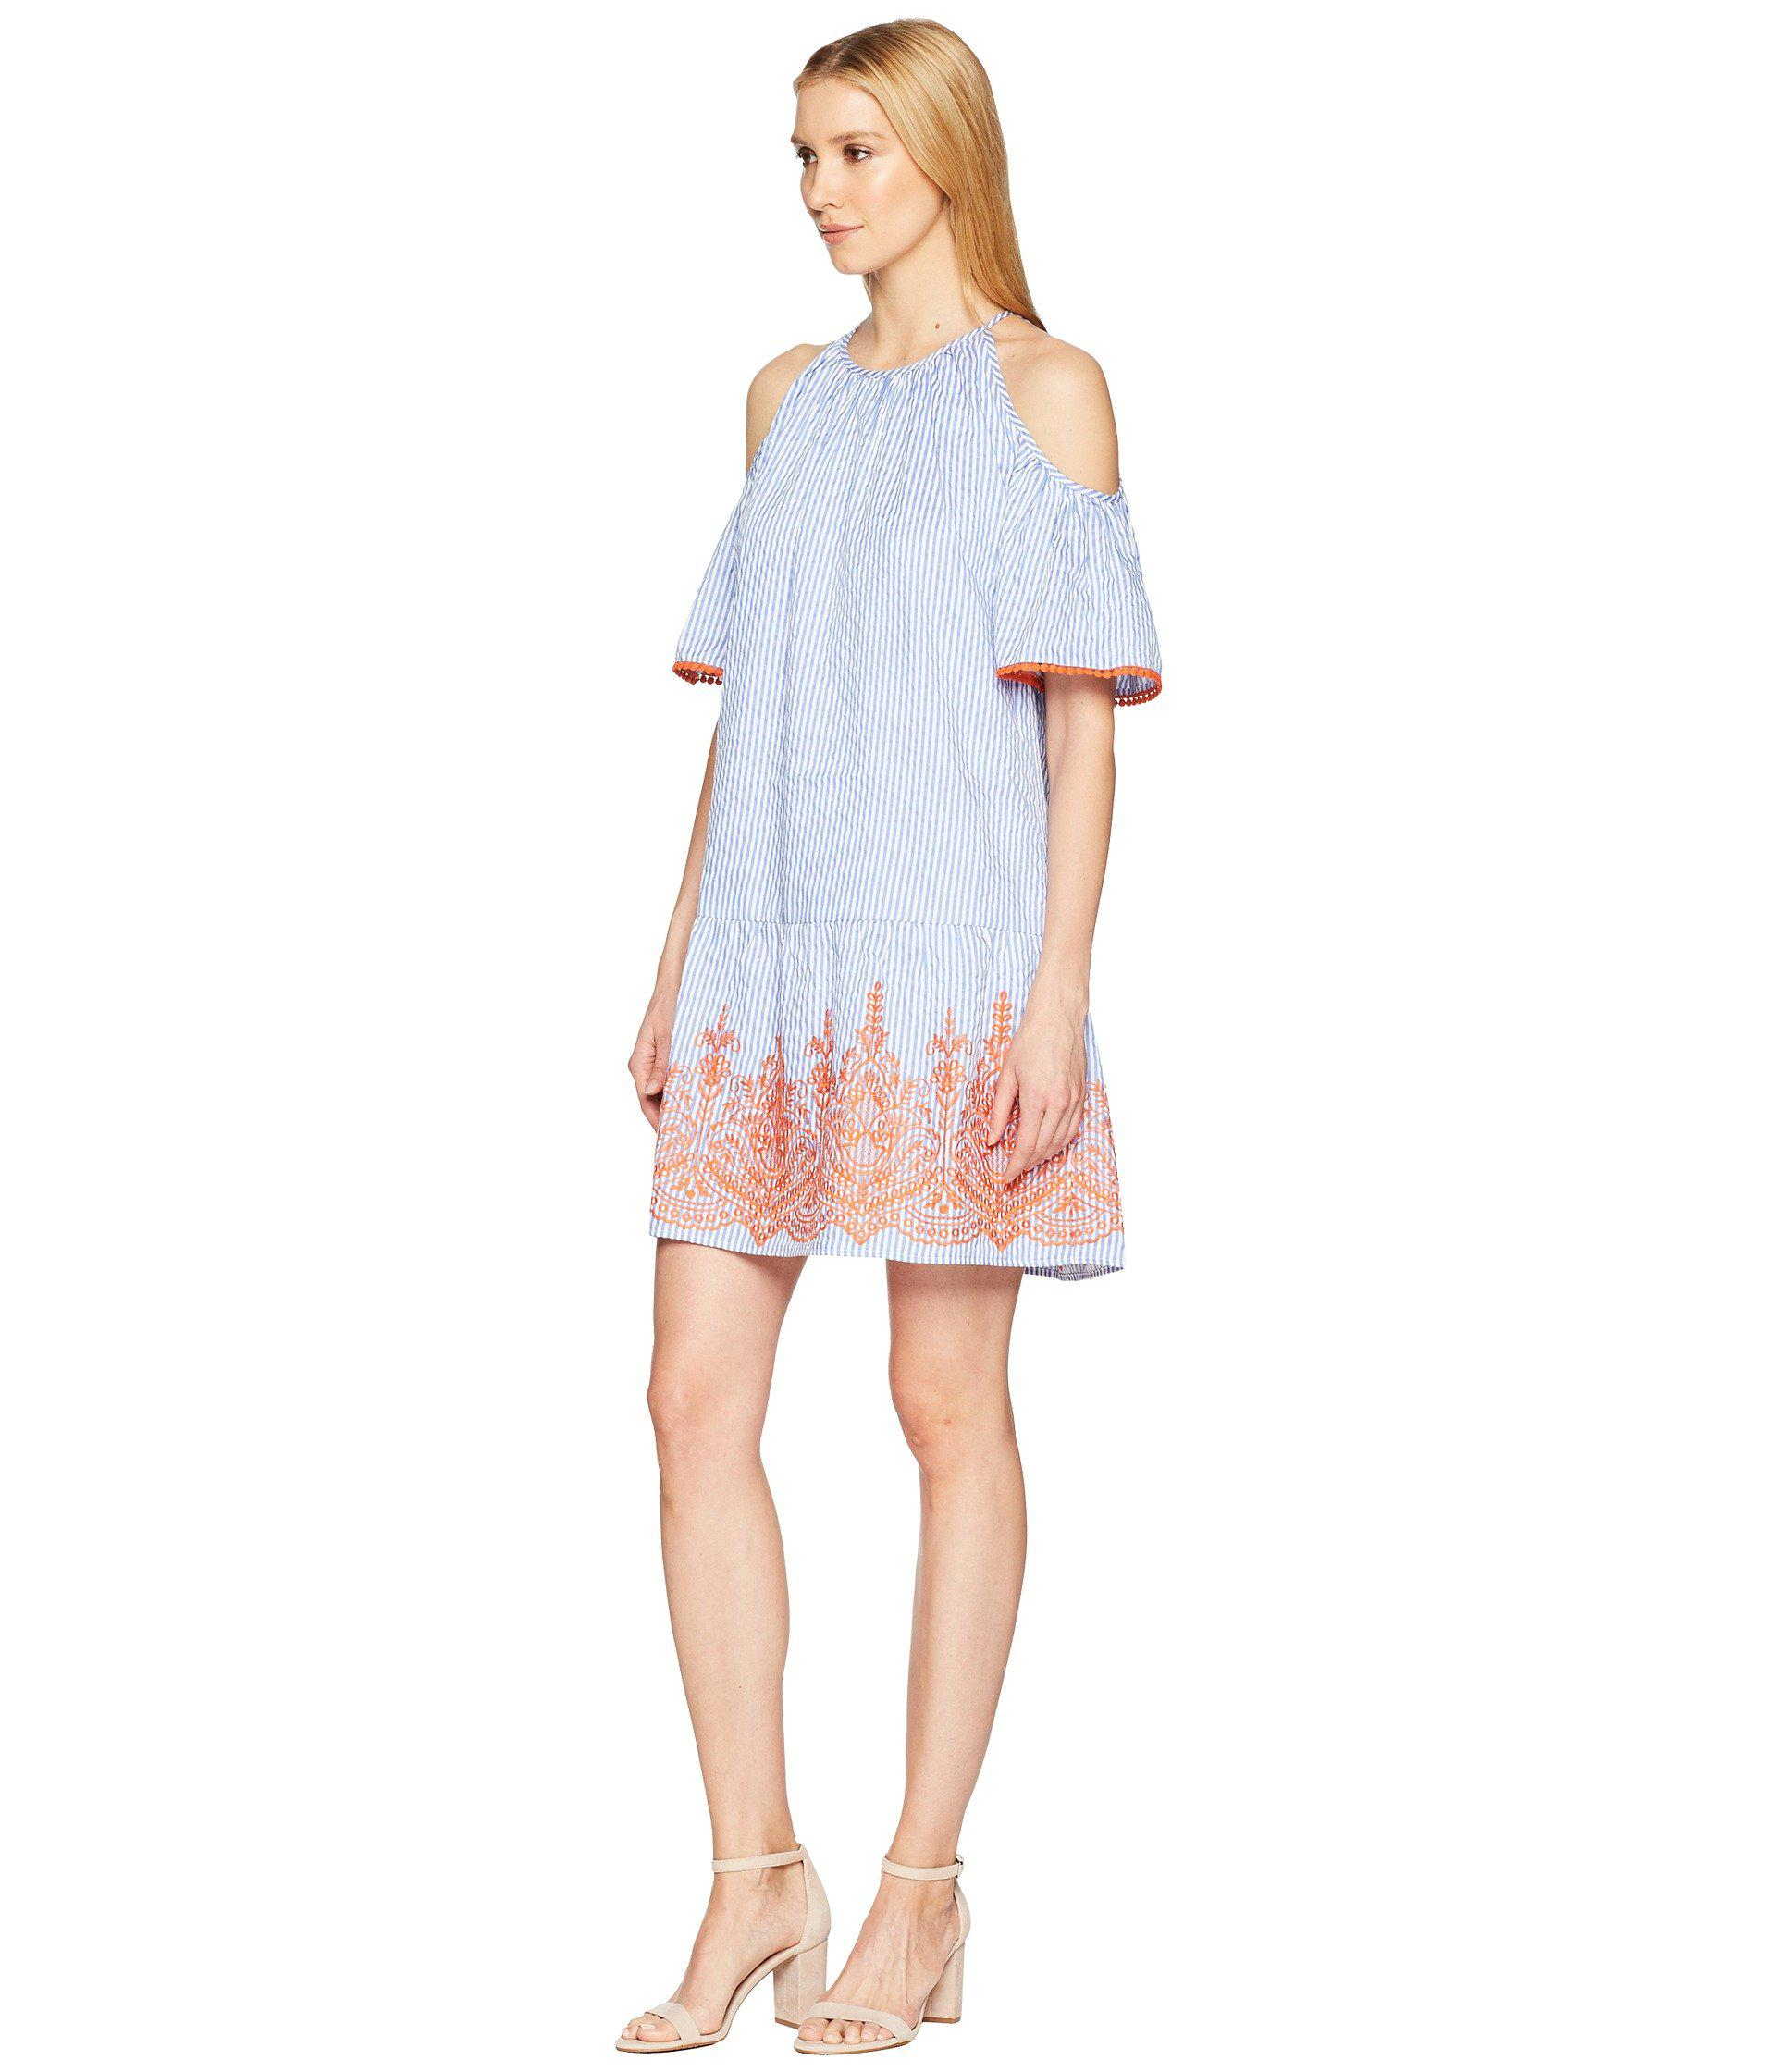 41d233b8 Lyst - Maggy London Embroidery Stripe Cold Shoulder Shift Dress in Blue -  Save 47%